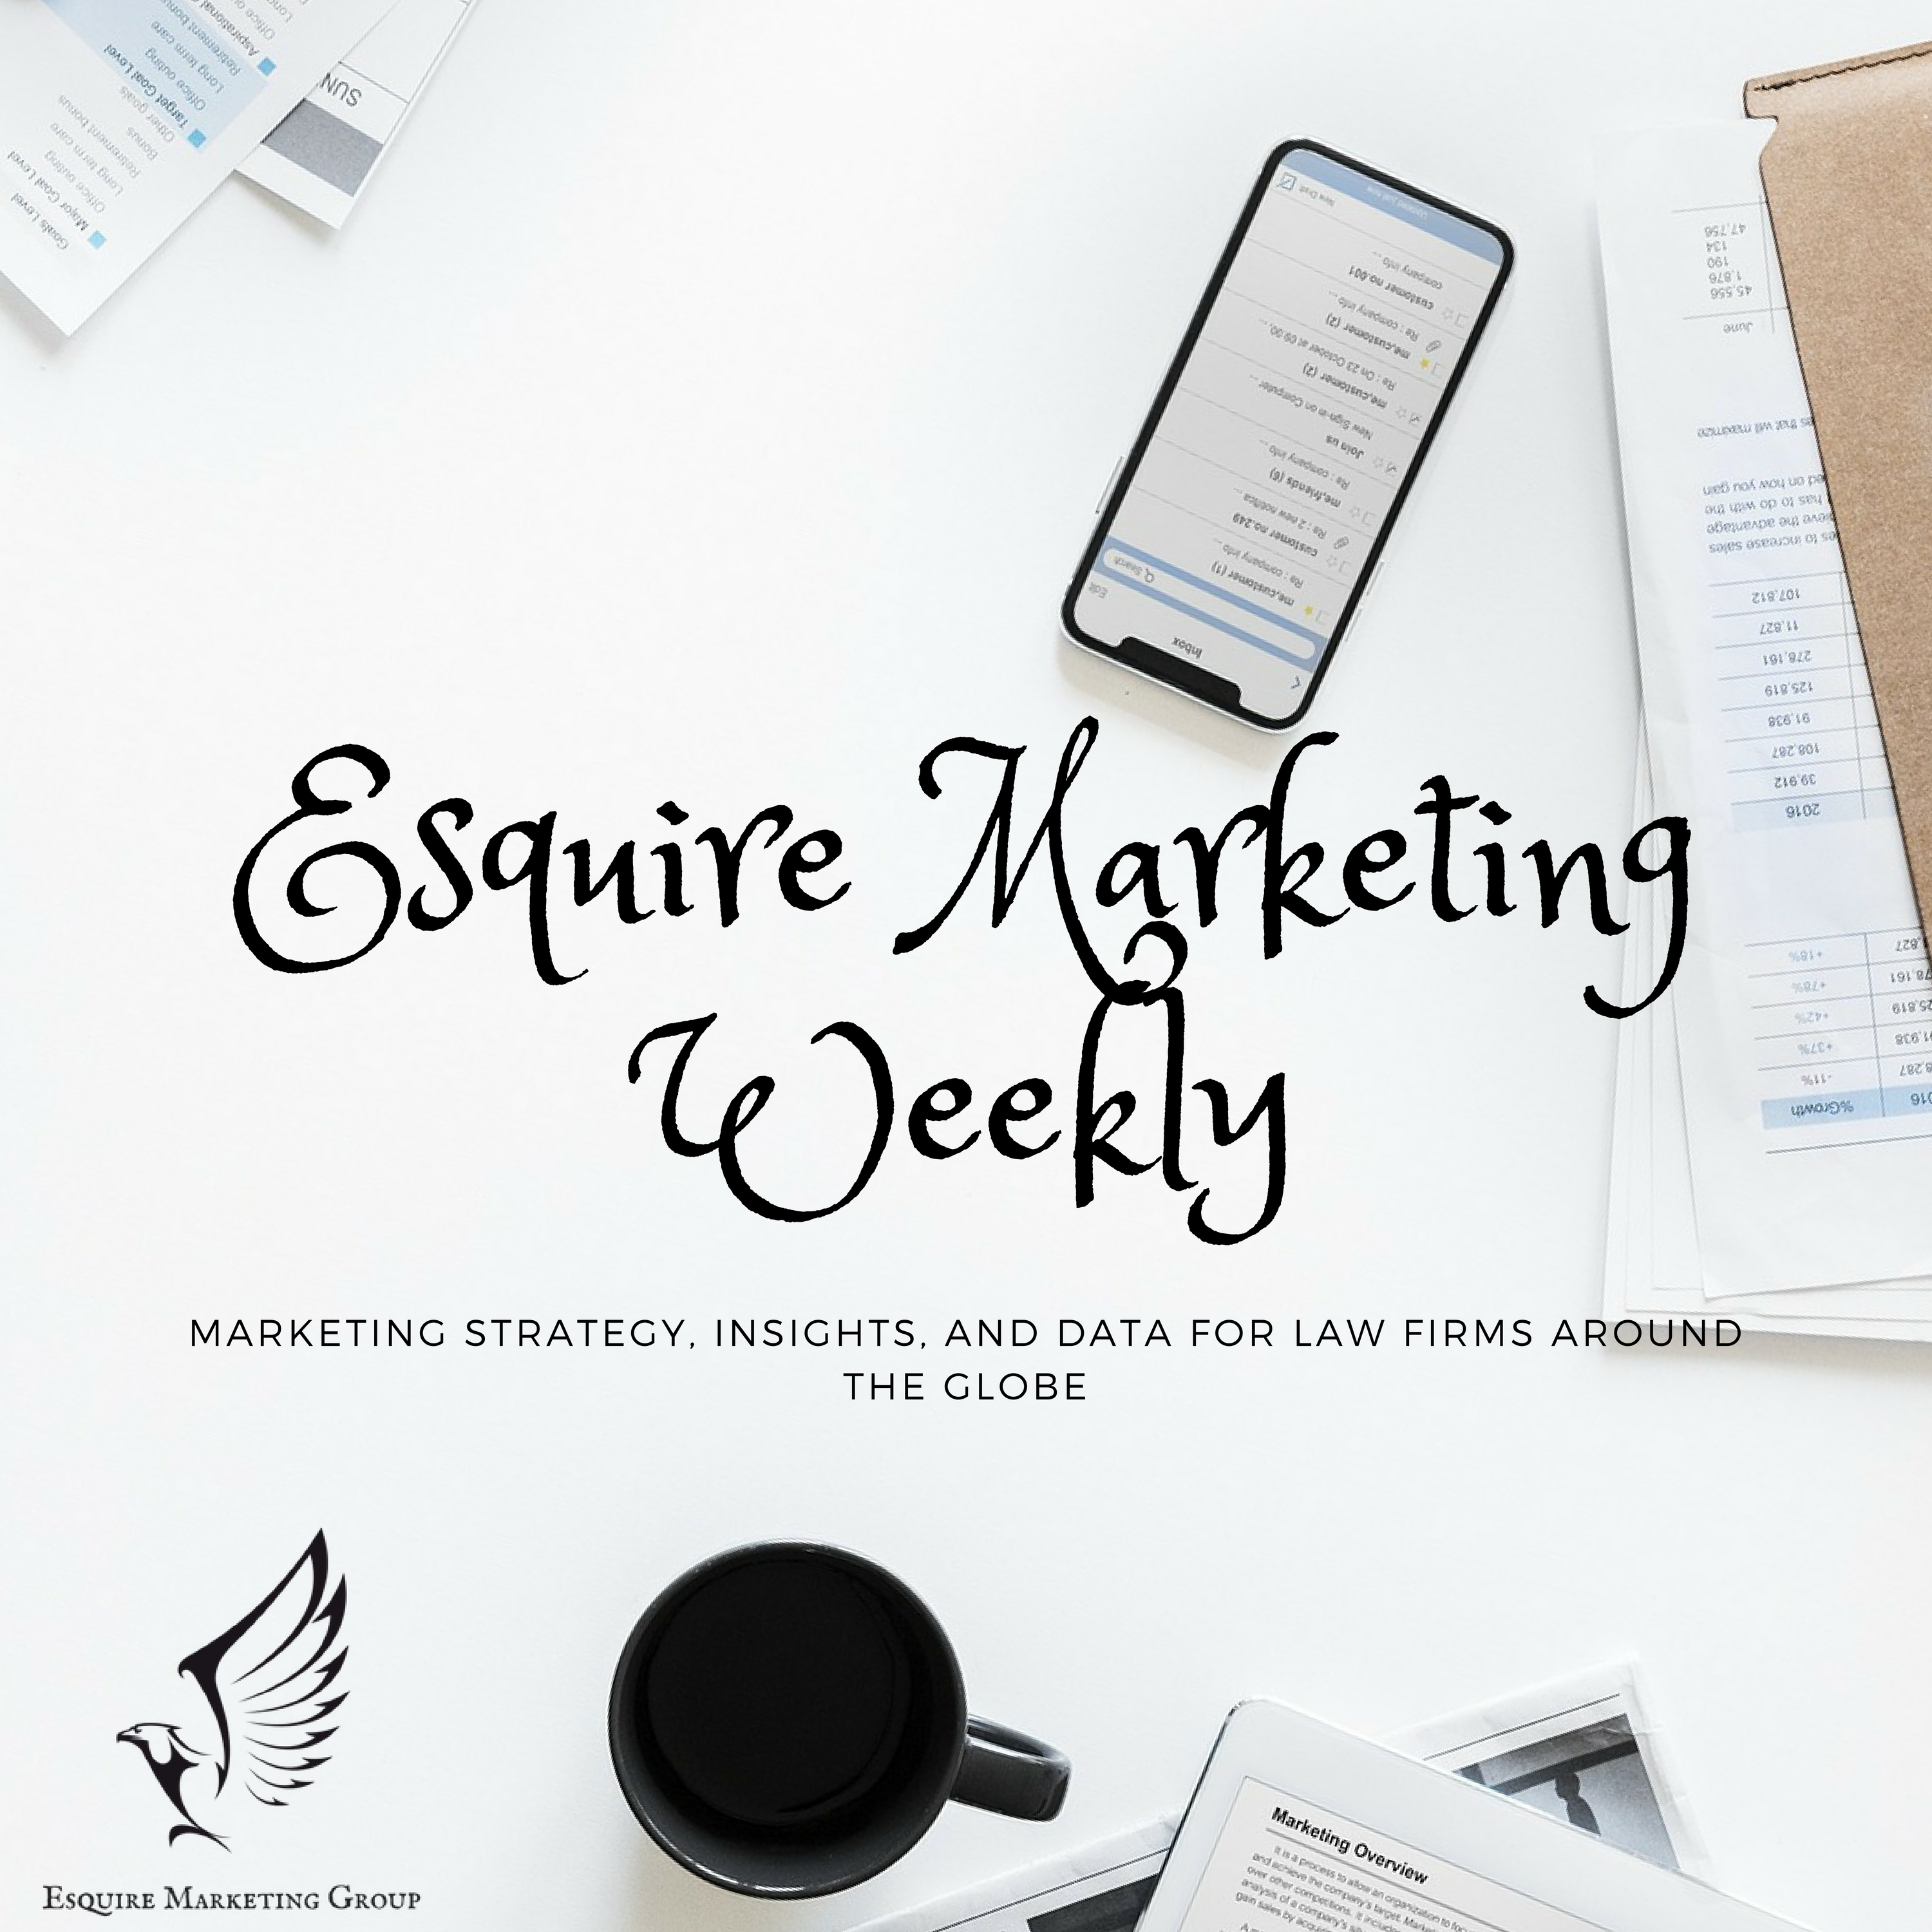 Esquire Marketing Weekly